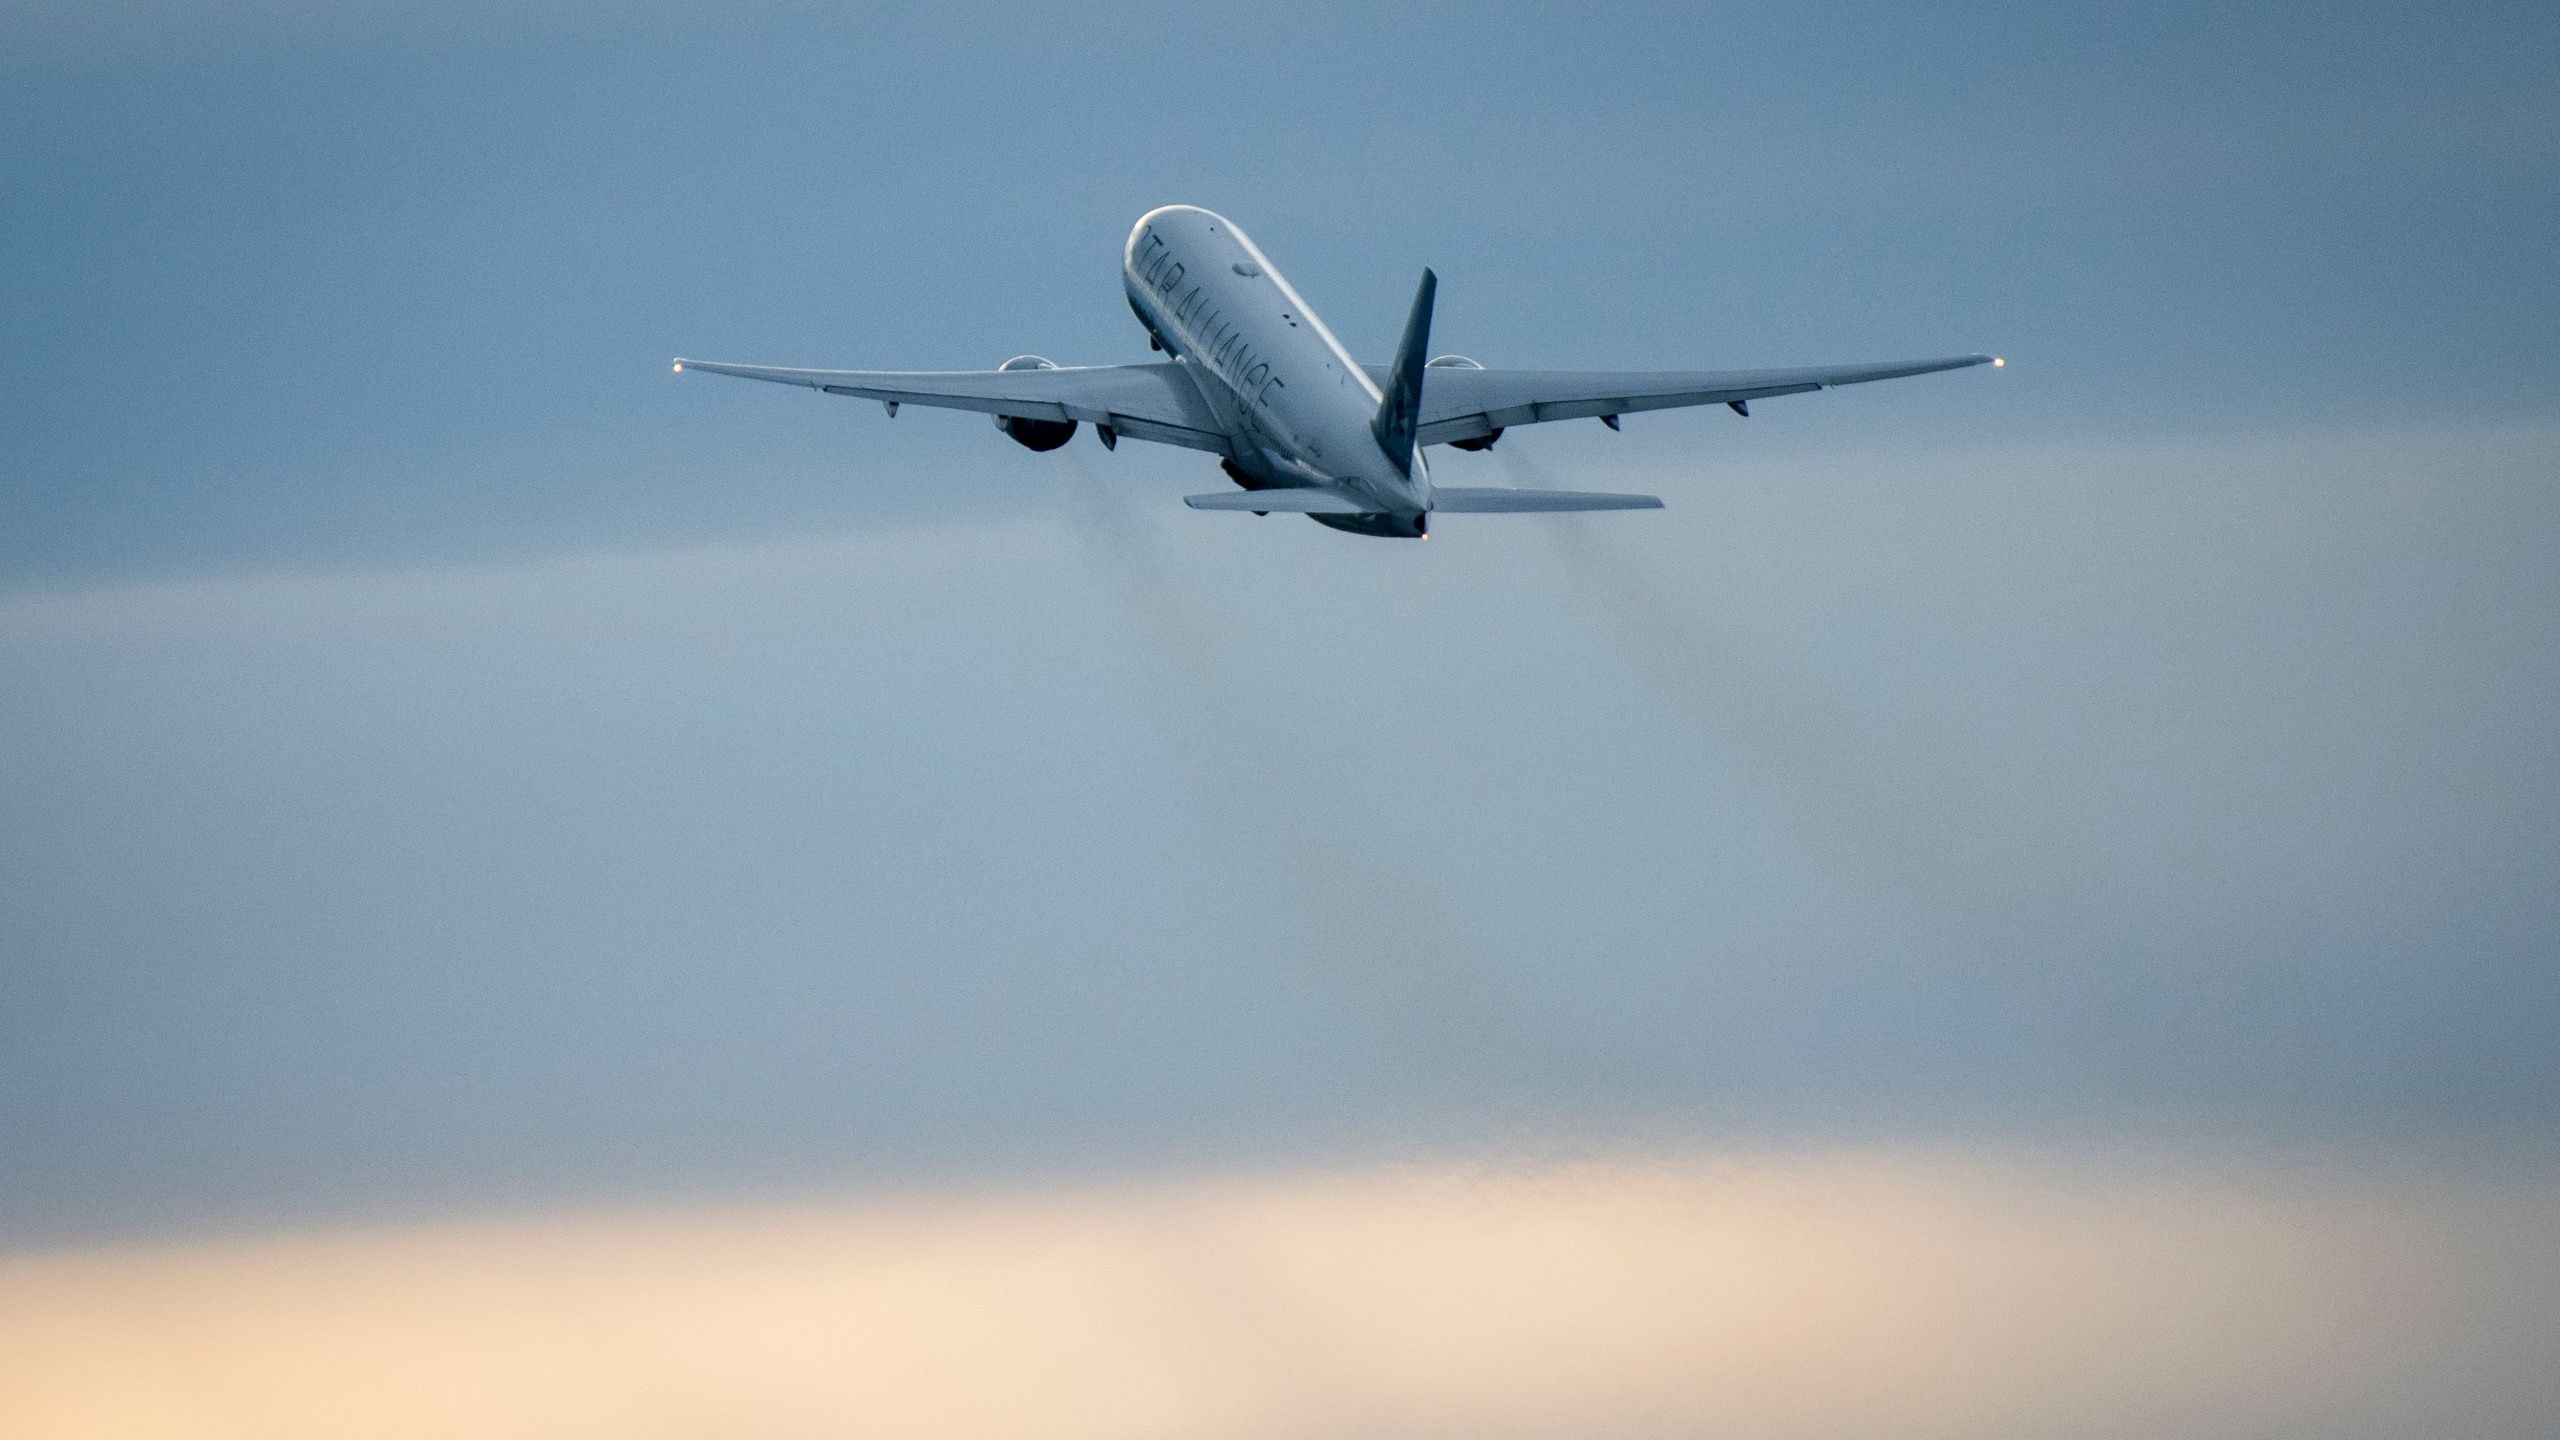 A United Airlines plane takes off to San Fransisco at Frankfurt Airport on March 12, 2020 in Frankfurt, Germany. (Thomas Lohnes/Getty Images)